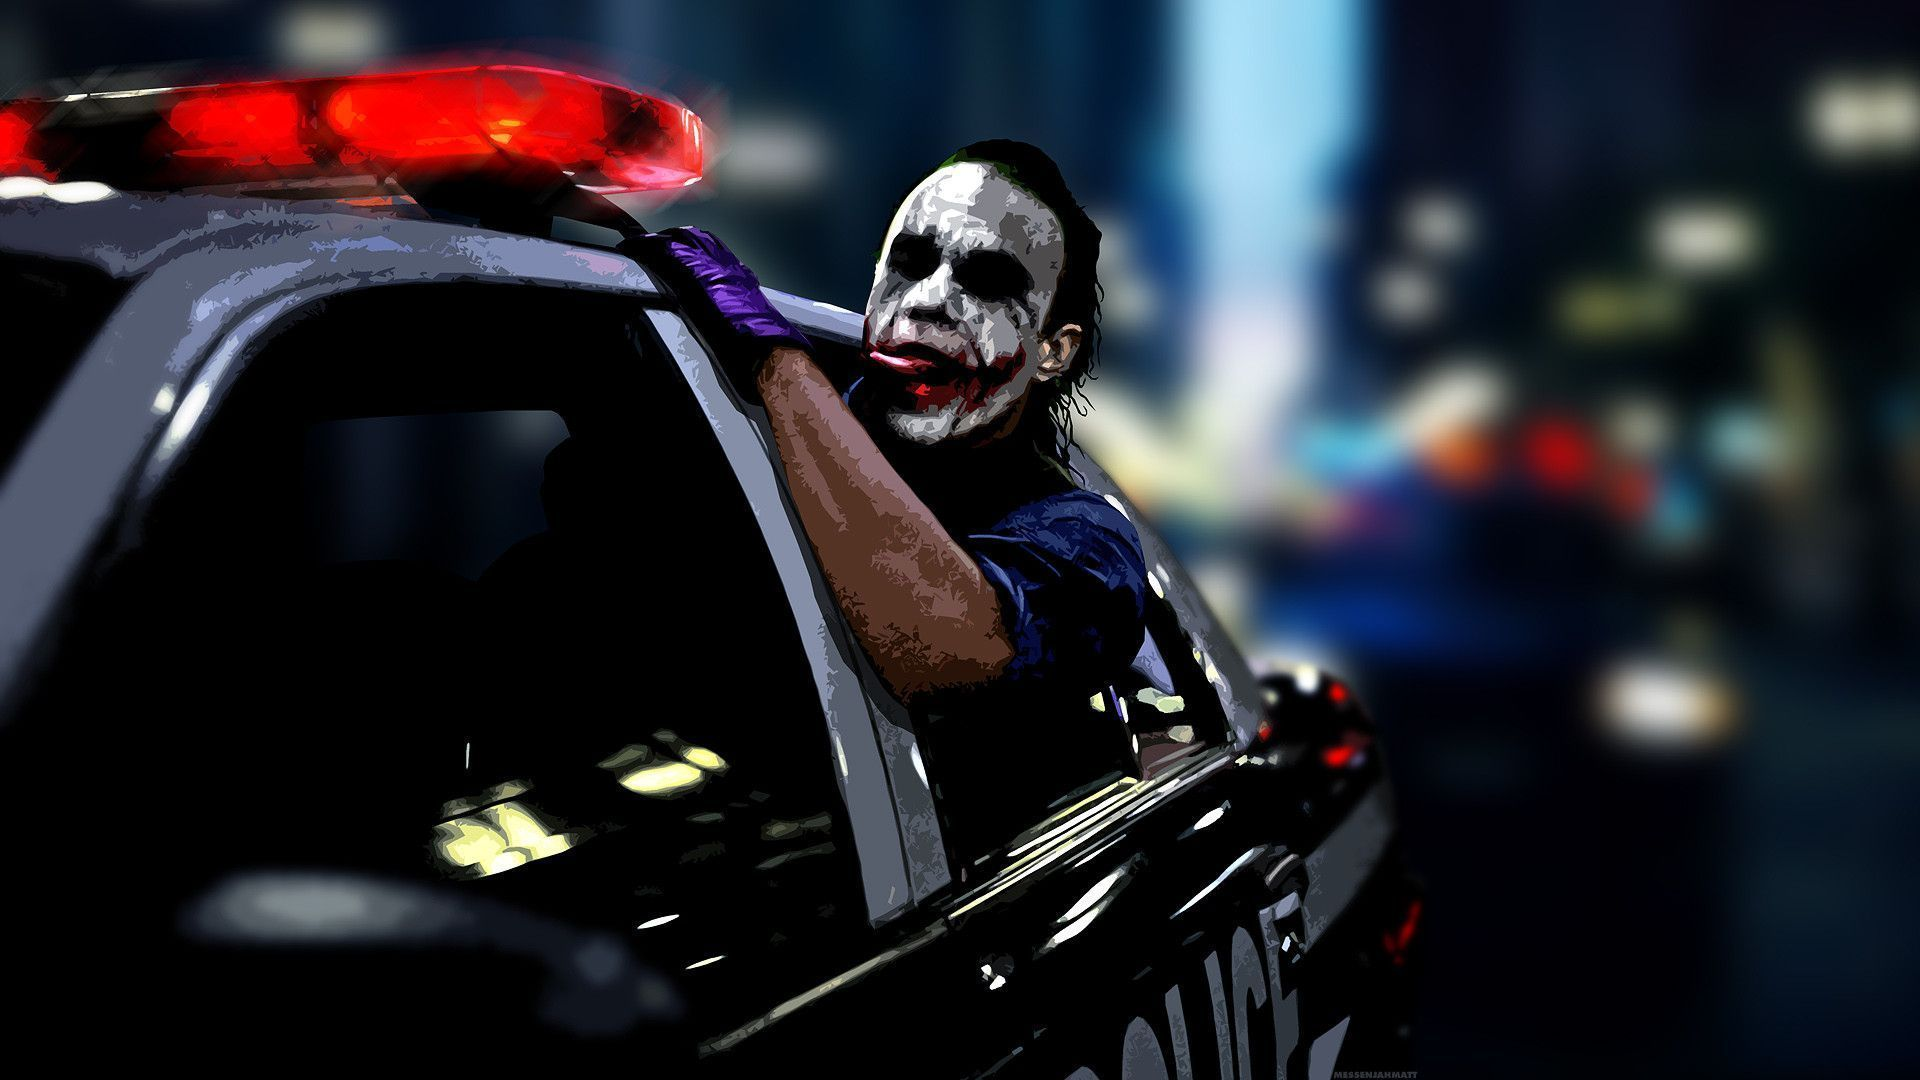 joker police car widescreen desktop mobile iphone android hd wallpaper and desktop